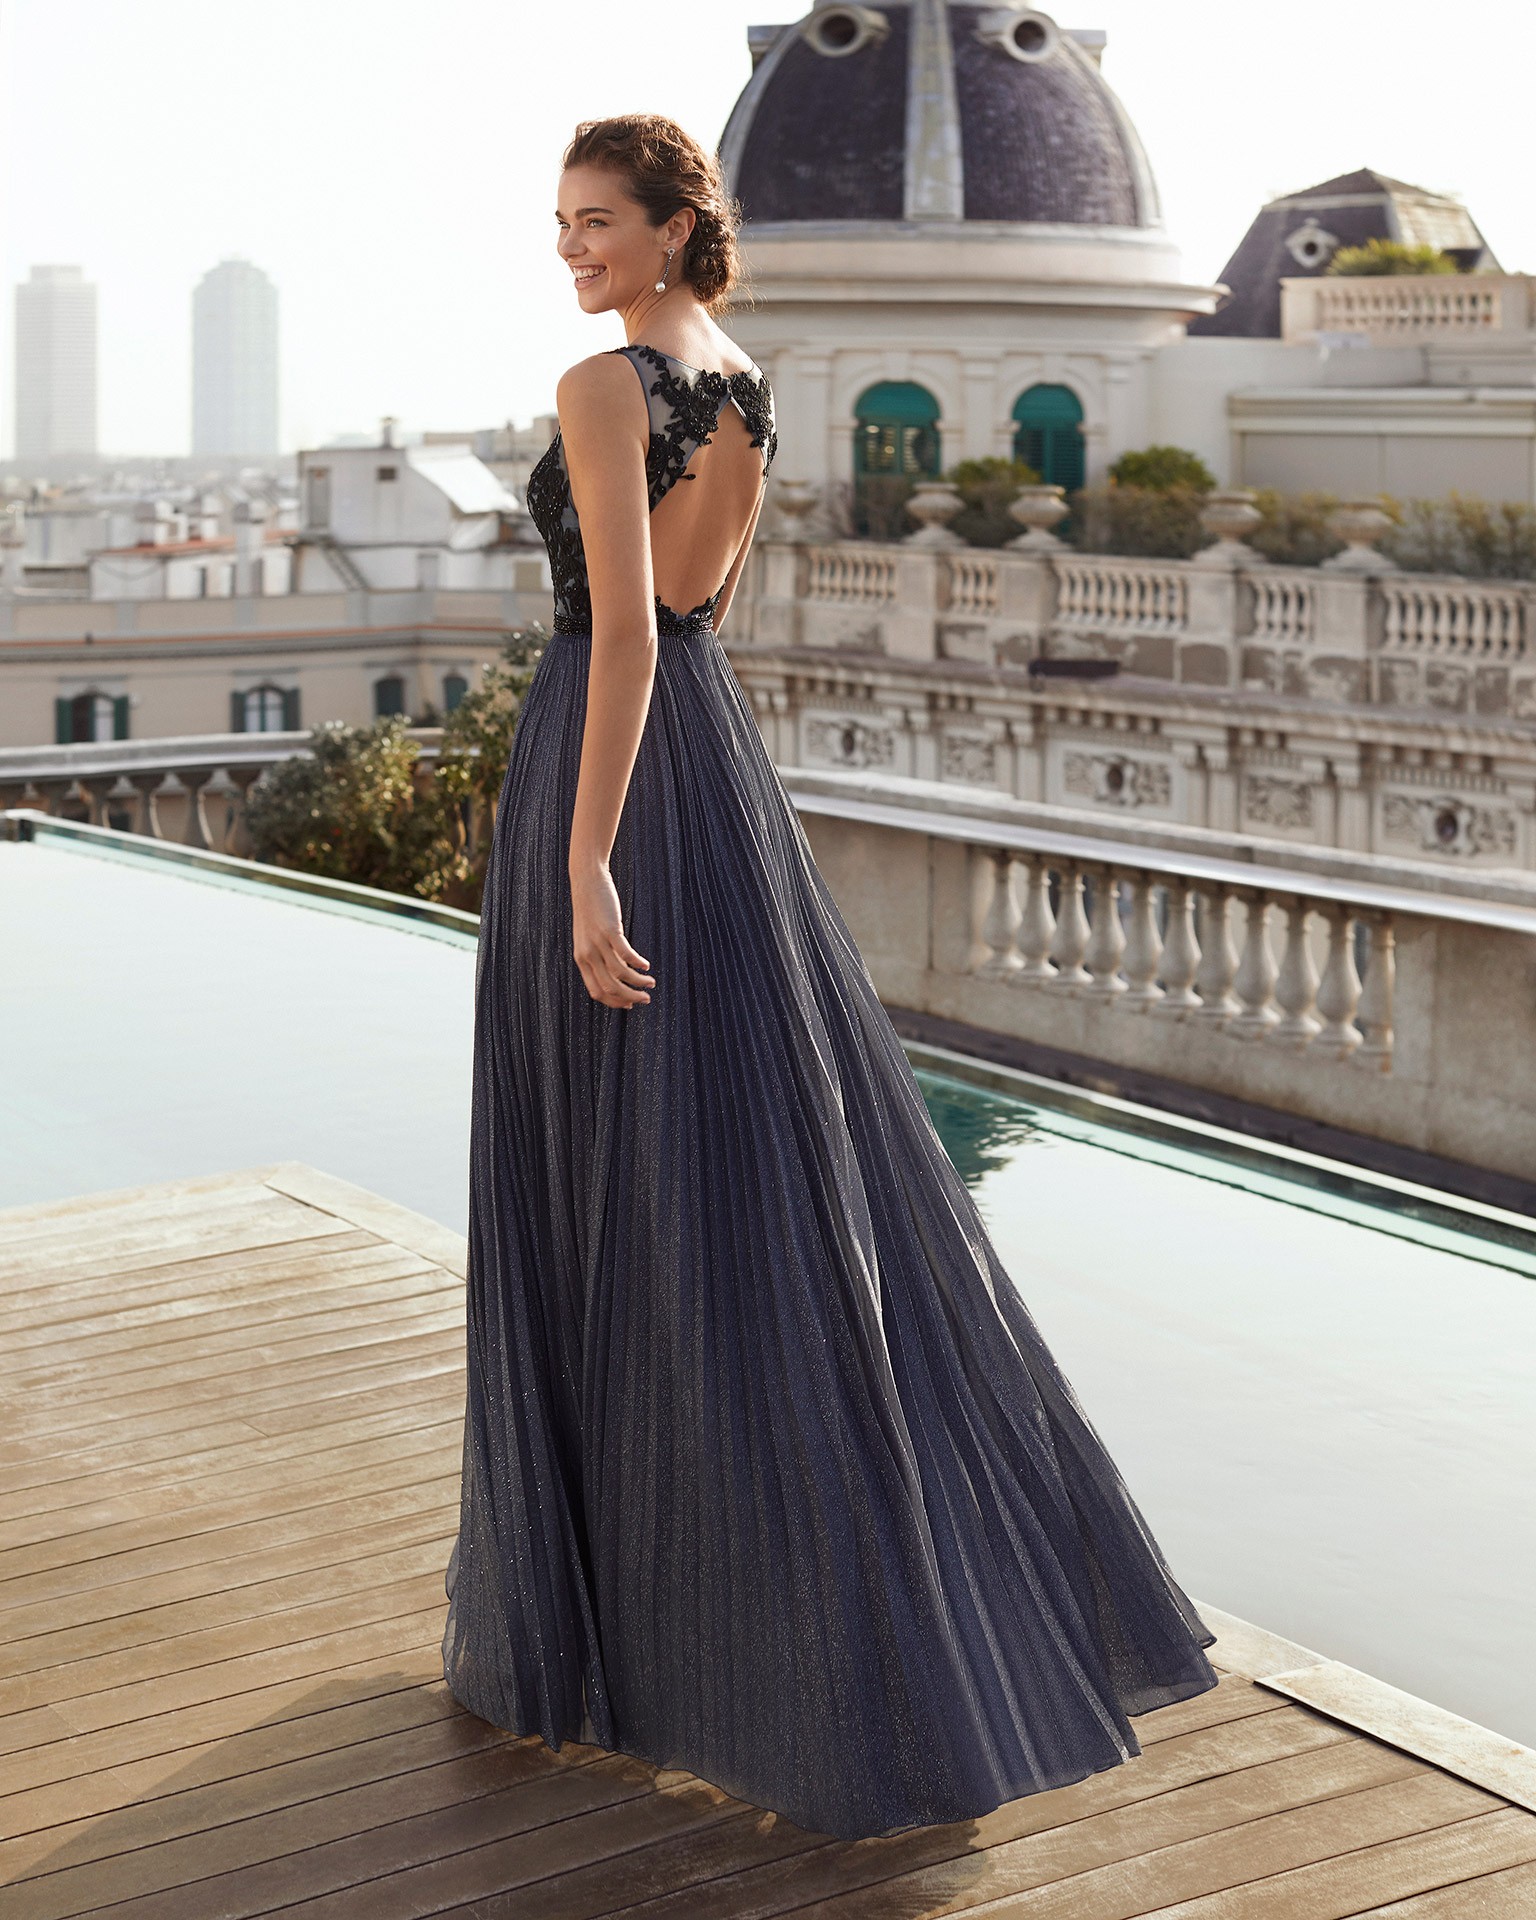 Cocktail dress in lurex chiffon with bodice in beaded lace. Bateau neckline and low back. Beaded detail at waist. With shawl. 2021 MARFIL BARCELONA Collection.